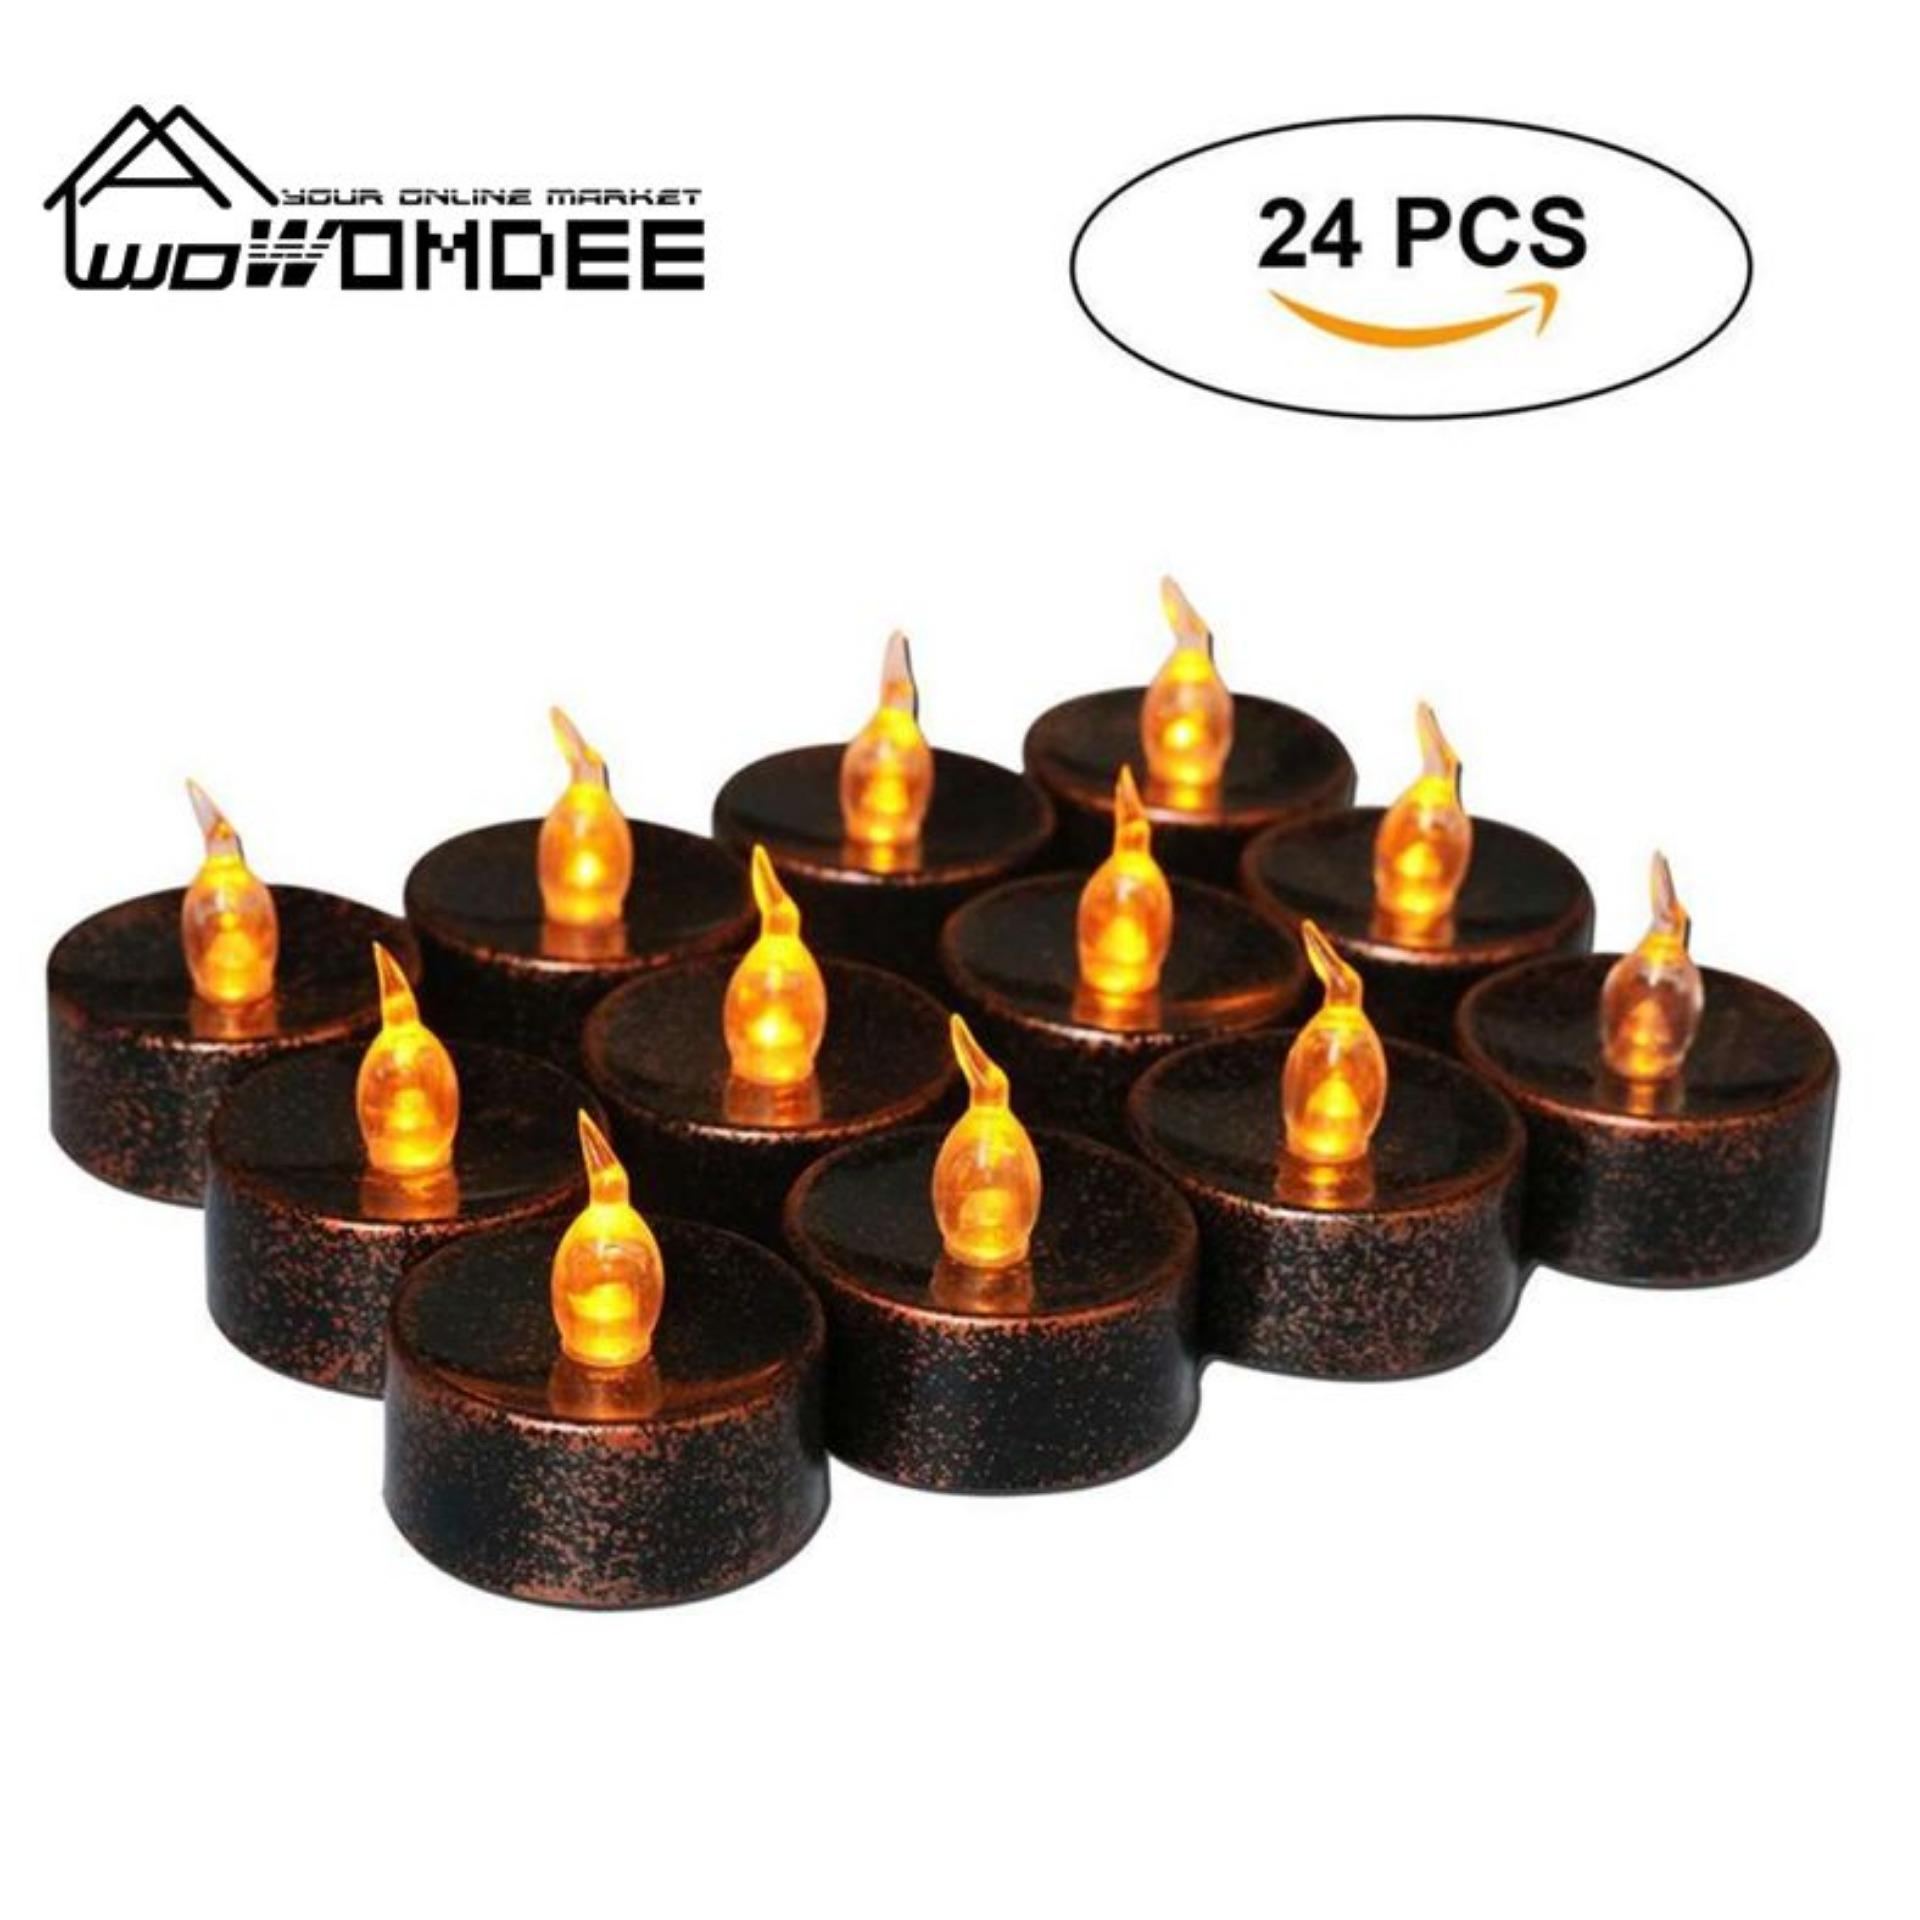 Womdee Tea Lights Electric Battery Fake Tealight Black LED Candles For Votive, Wedding, Party, Table, Dining Room, Amber Yellow Light Bulb, Pack Of 24 - intl